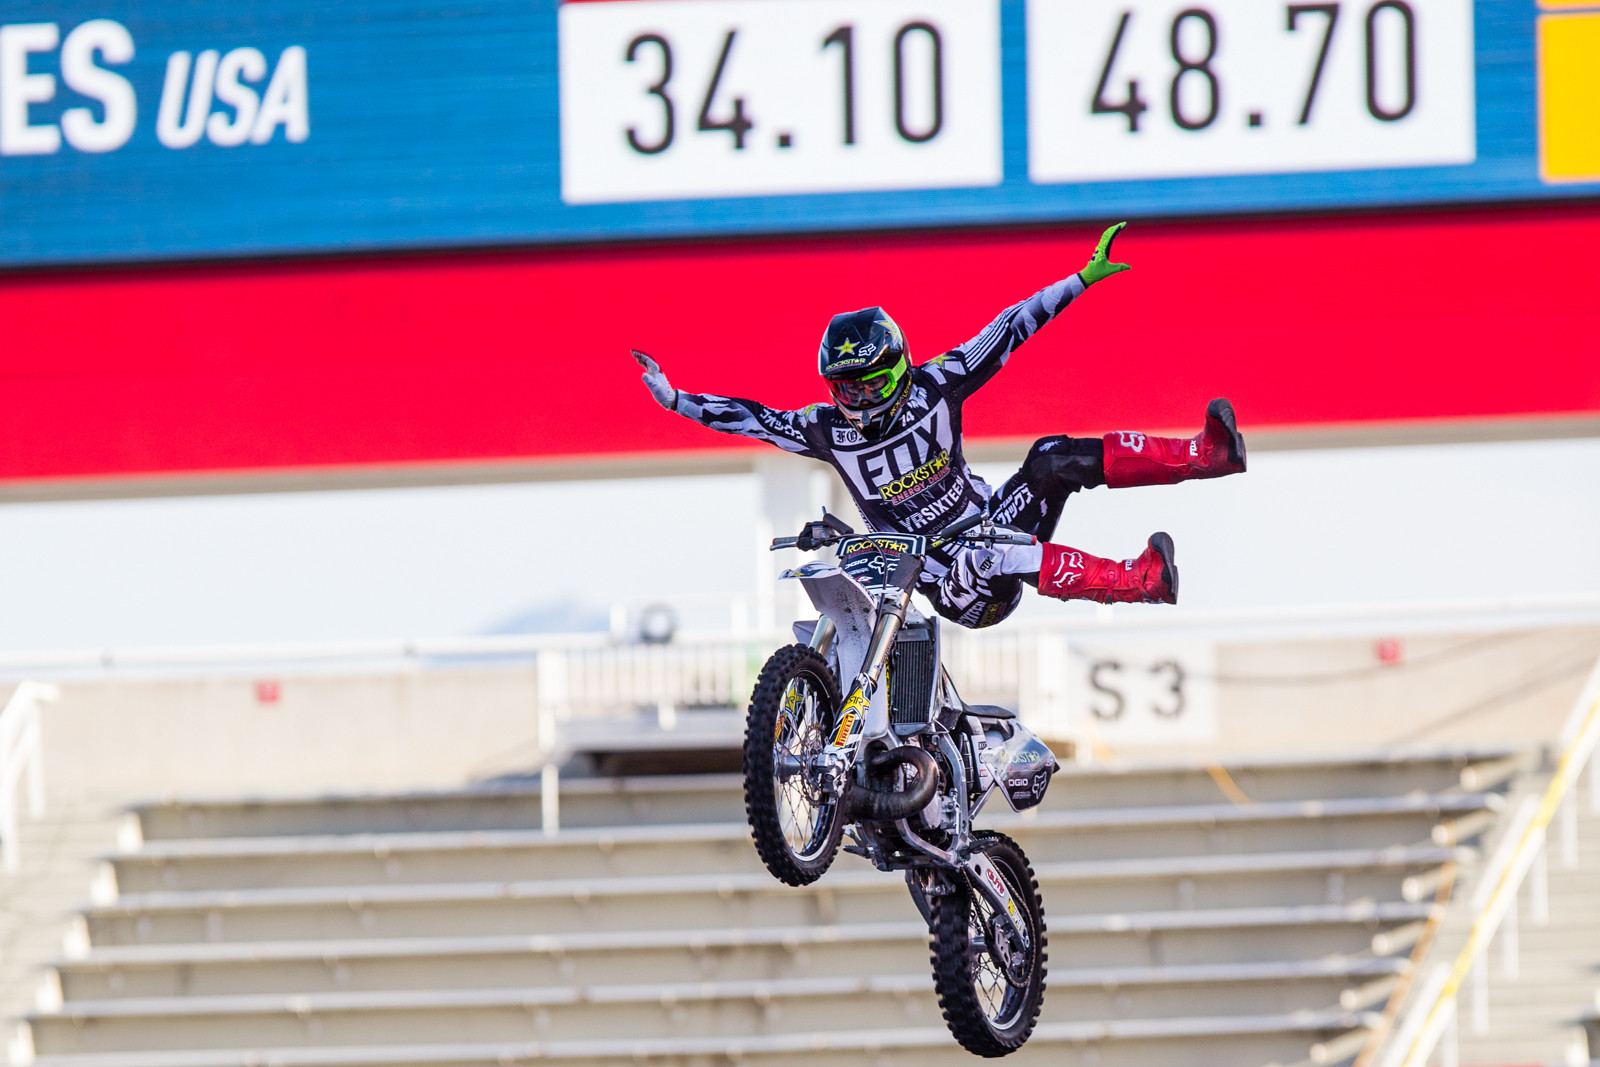 2016 Nitro World Games: FMX and Best Trick Finals Gallery - Adam Jones - 2016 Nitro World Games: FMX and Best Trick Finals Gallery - Motocross Pictures - Vital MX